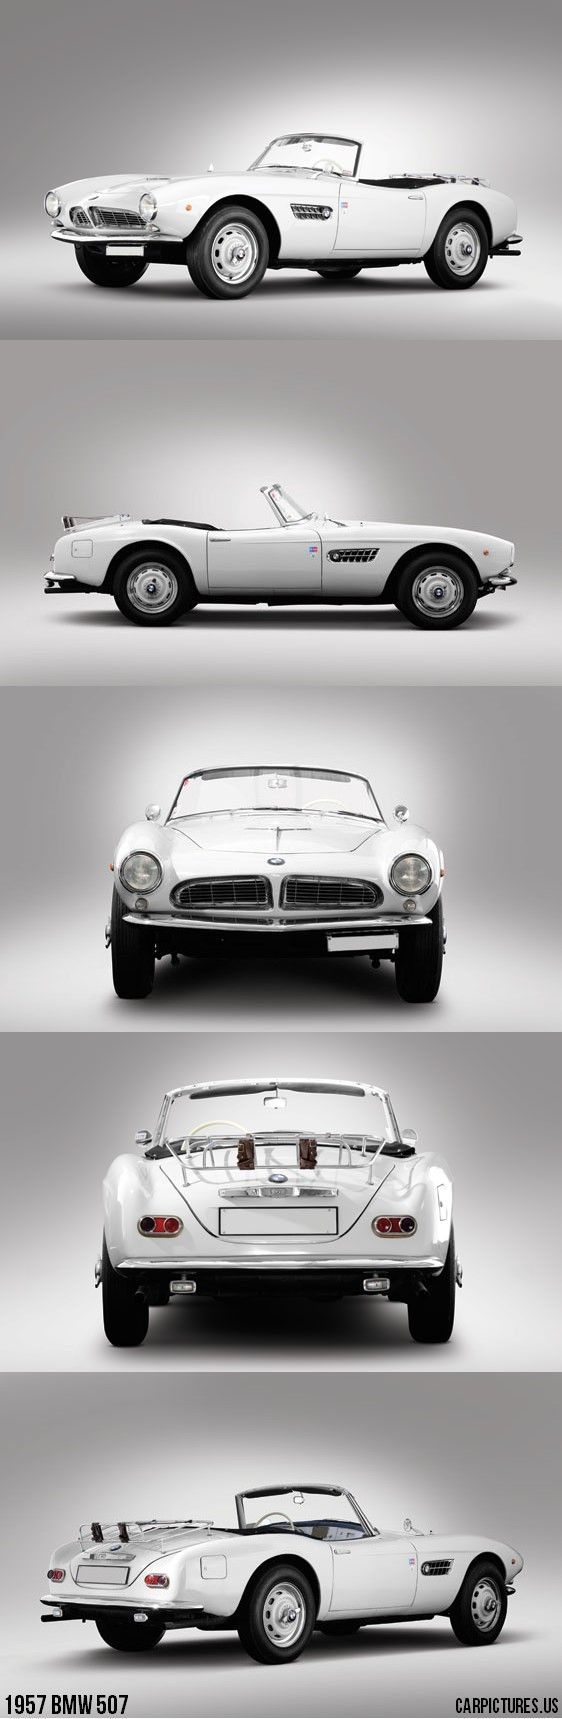 1957 BMW 507  BEVERLY HILLS CAR CLUB is always looking to purchase cars. We Buy and Sell All European and American Classic